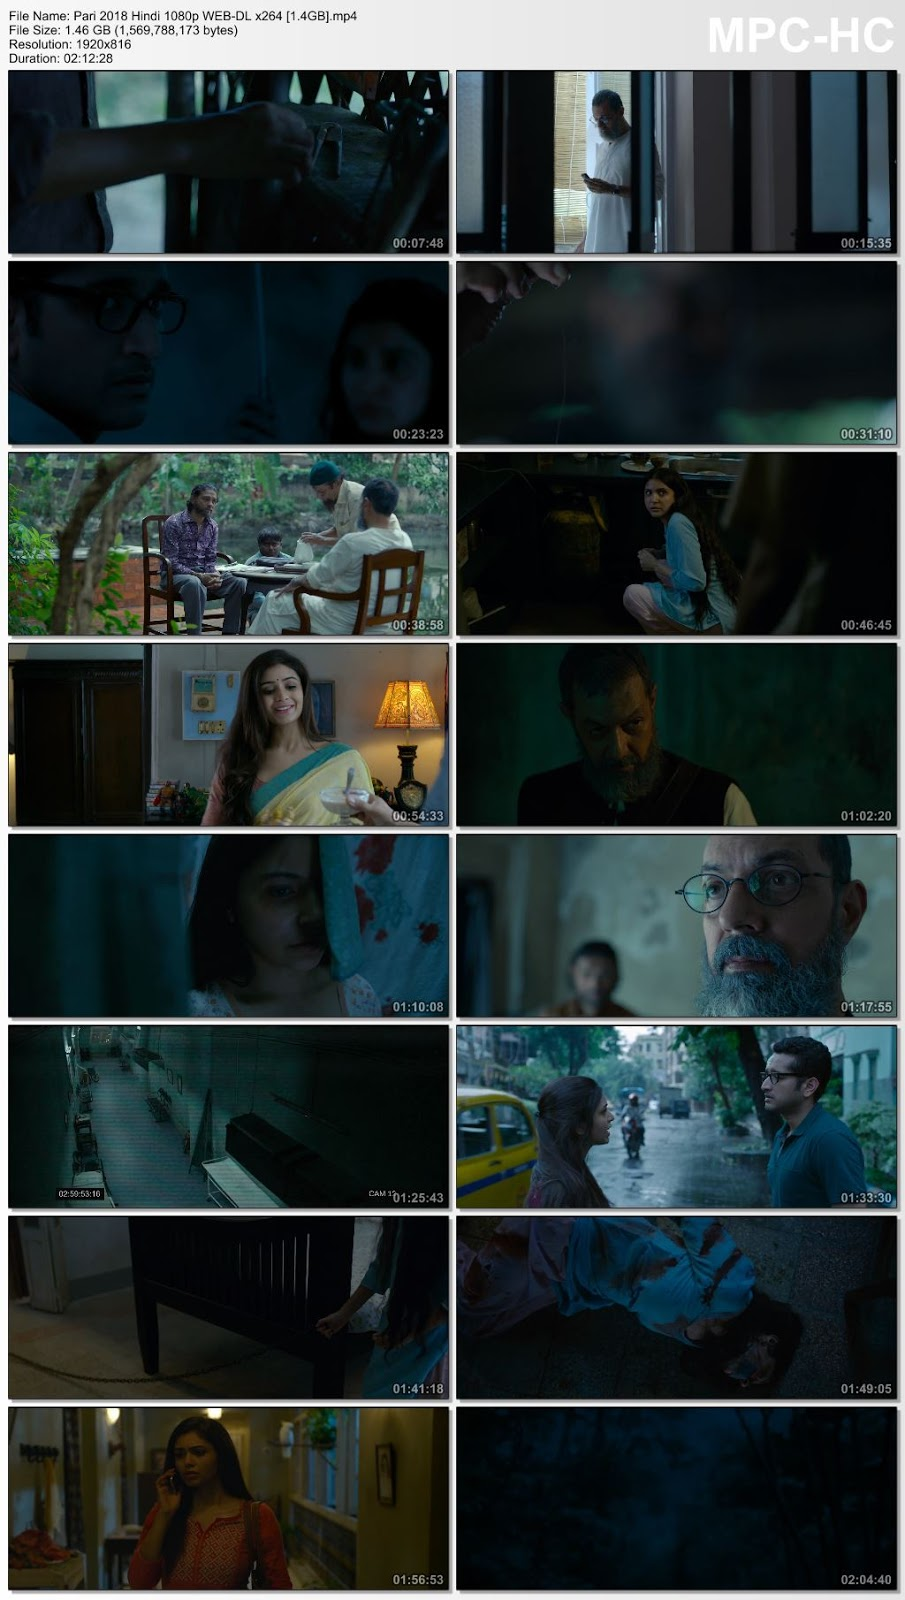 Pari (2018) Hindi 1080p WEB-DL x264 1.4GB Desirehub